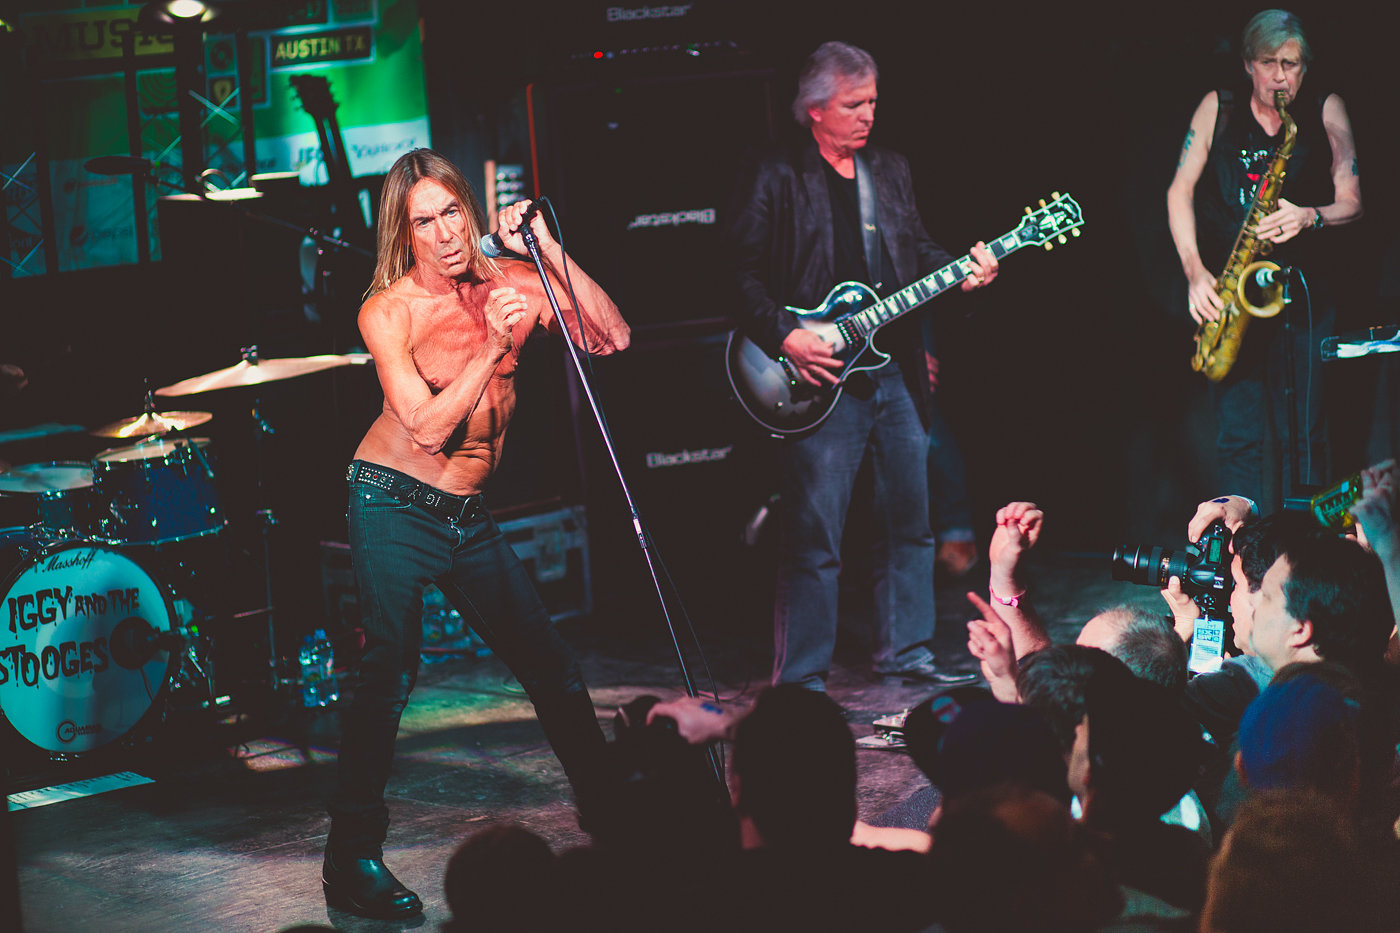 Iggy & The Stooges